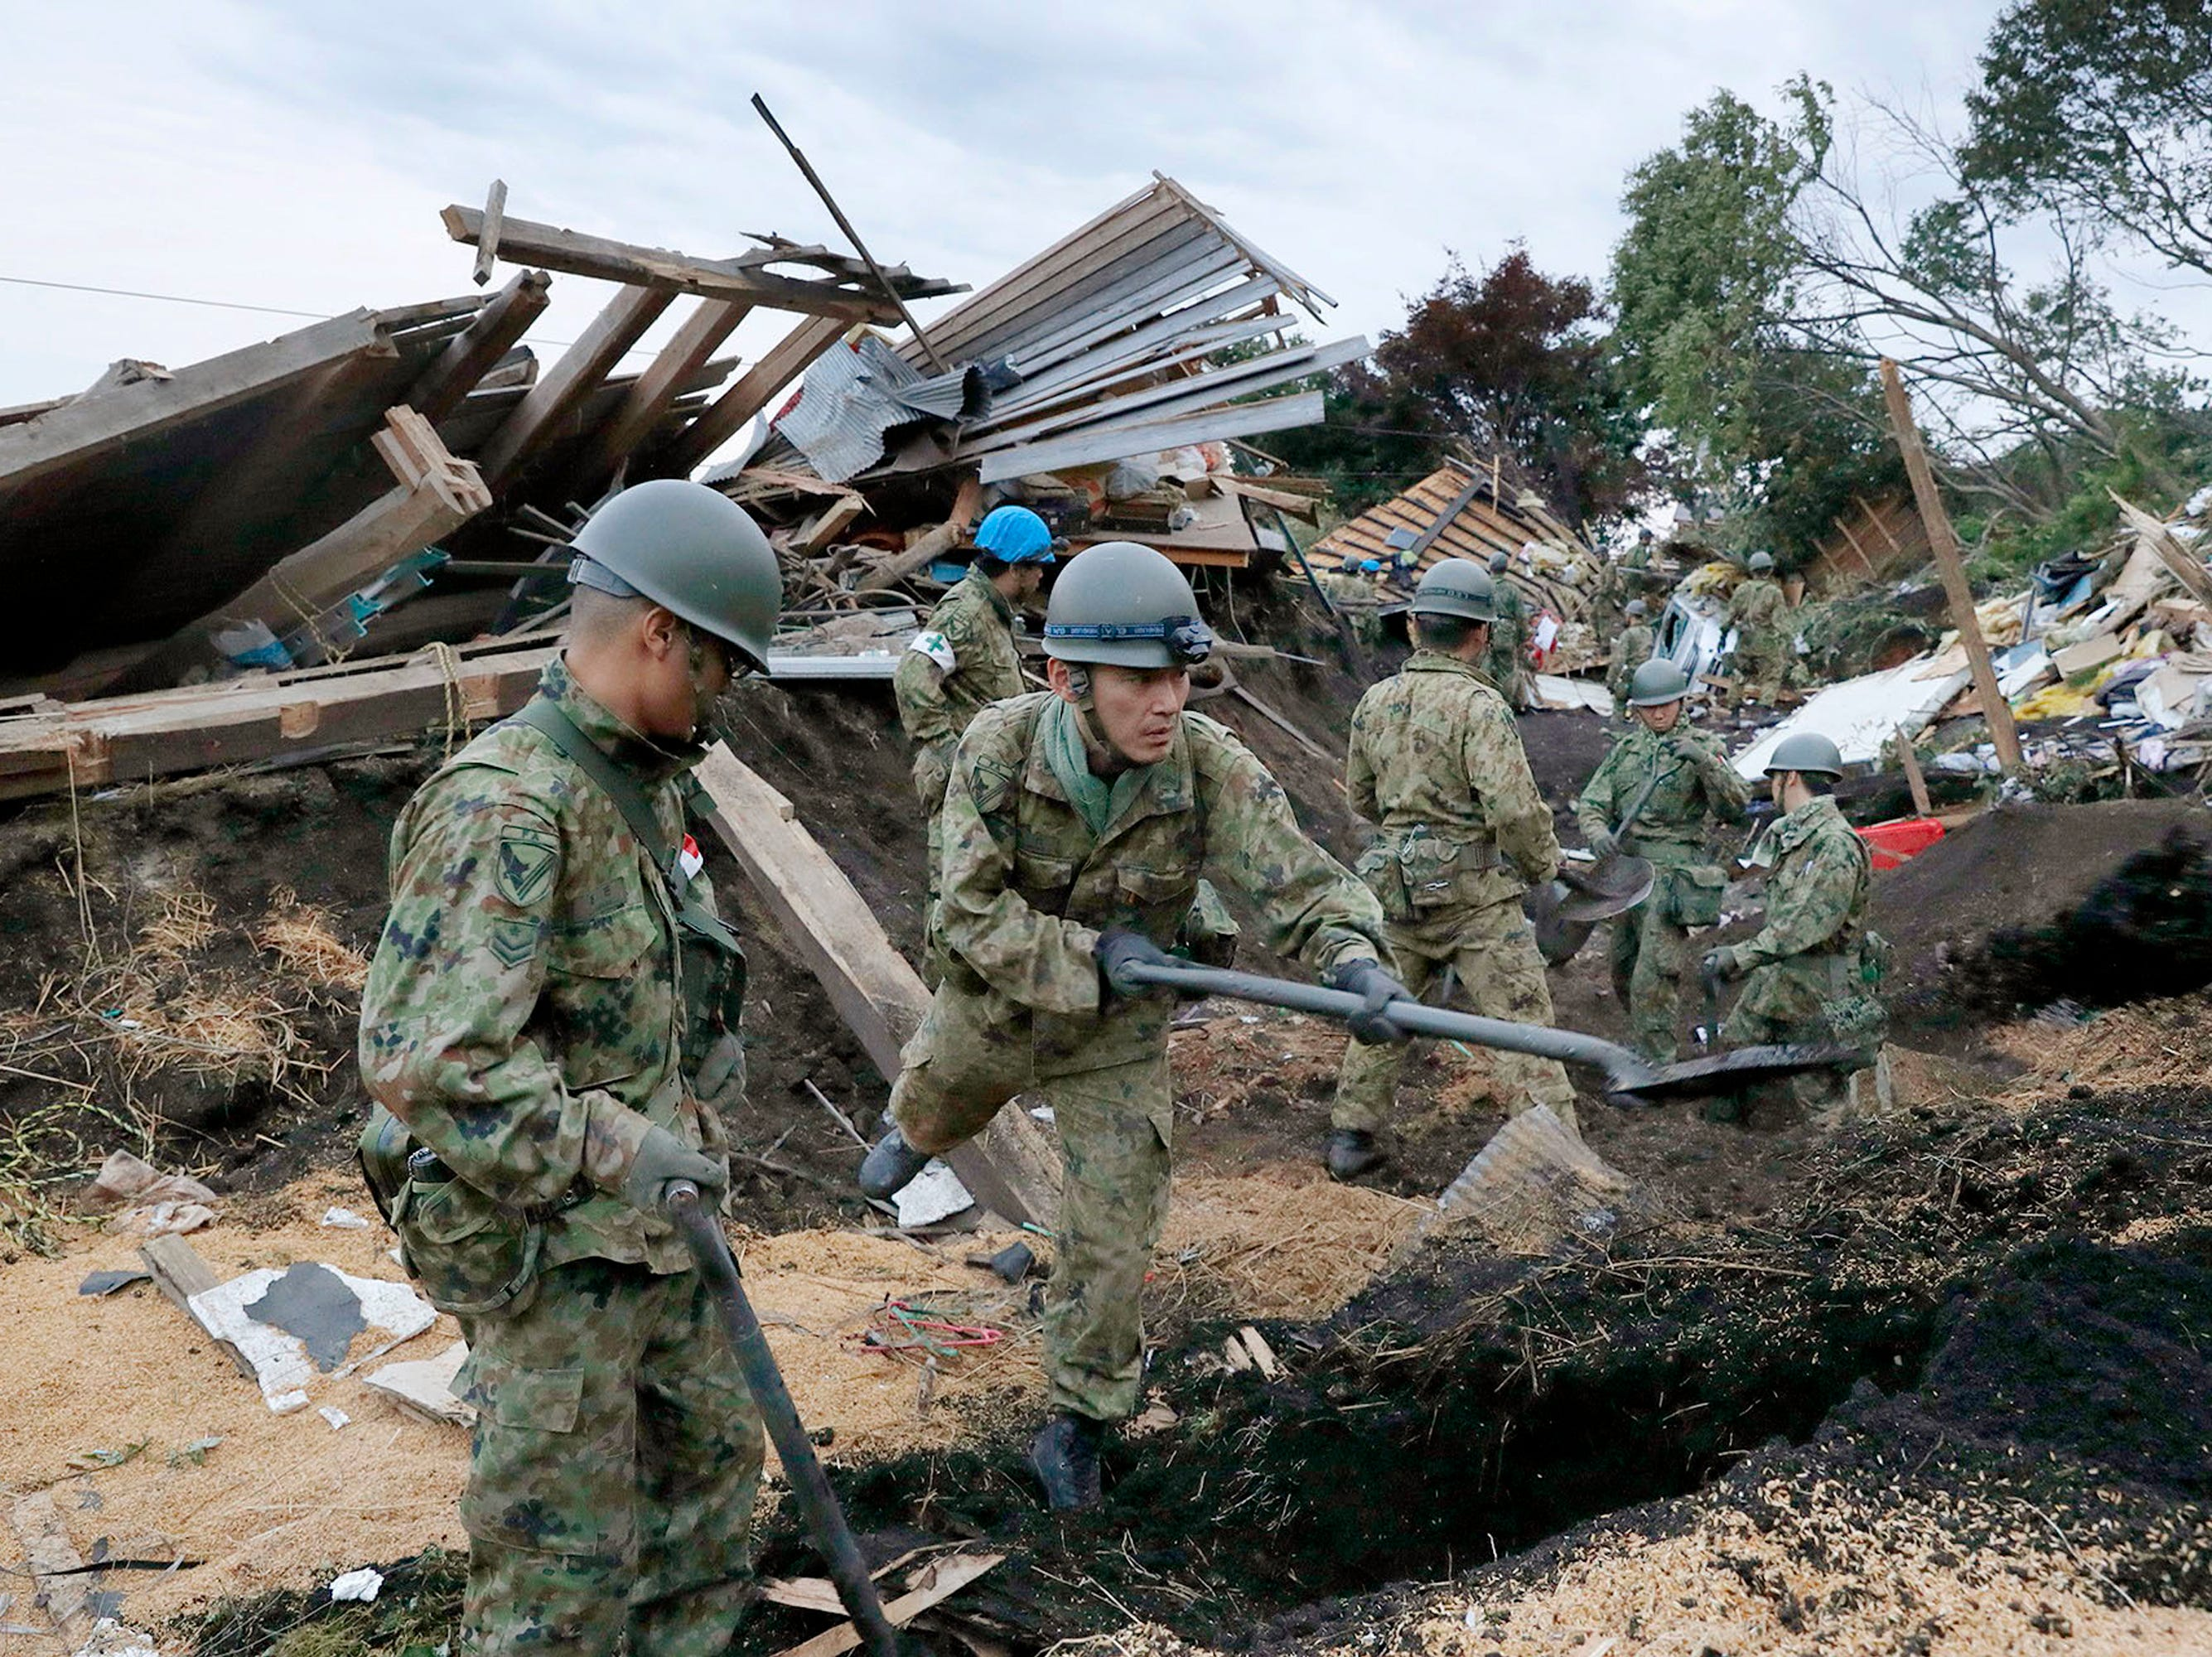 Japan Ground Self-Defense Force personnel search for missing persons at the site of a landslide triggered by a powerful earthquake in Atsuma, Hokkaido, northern Japan, Friday, Sept. 7, 2018.